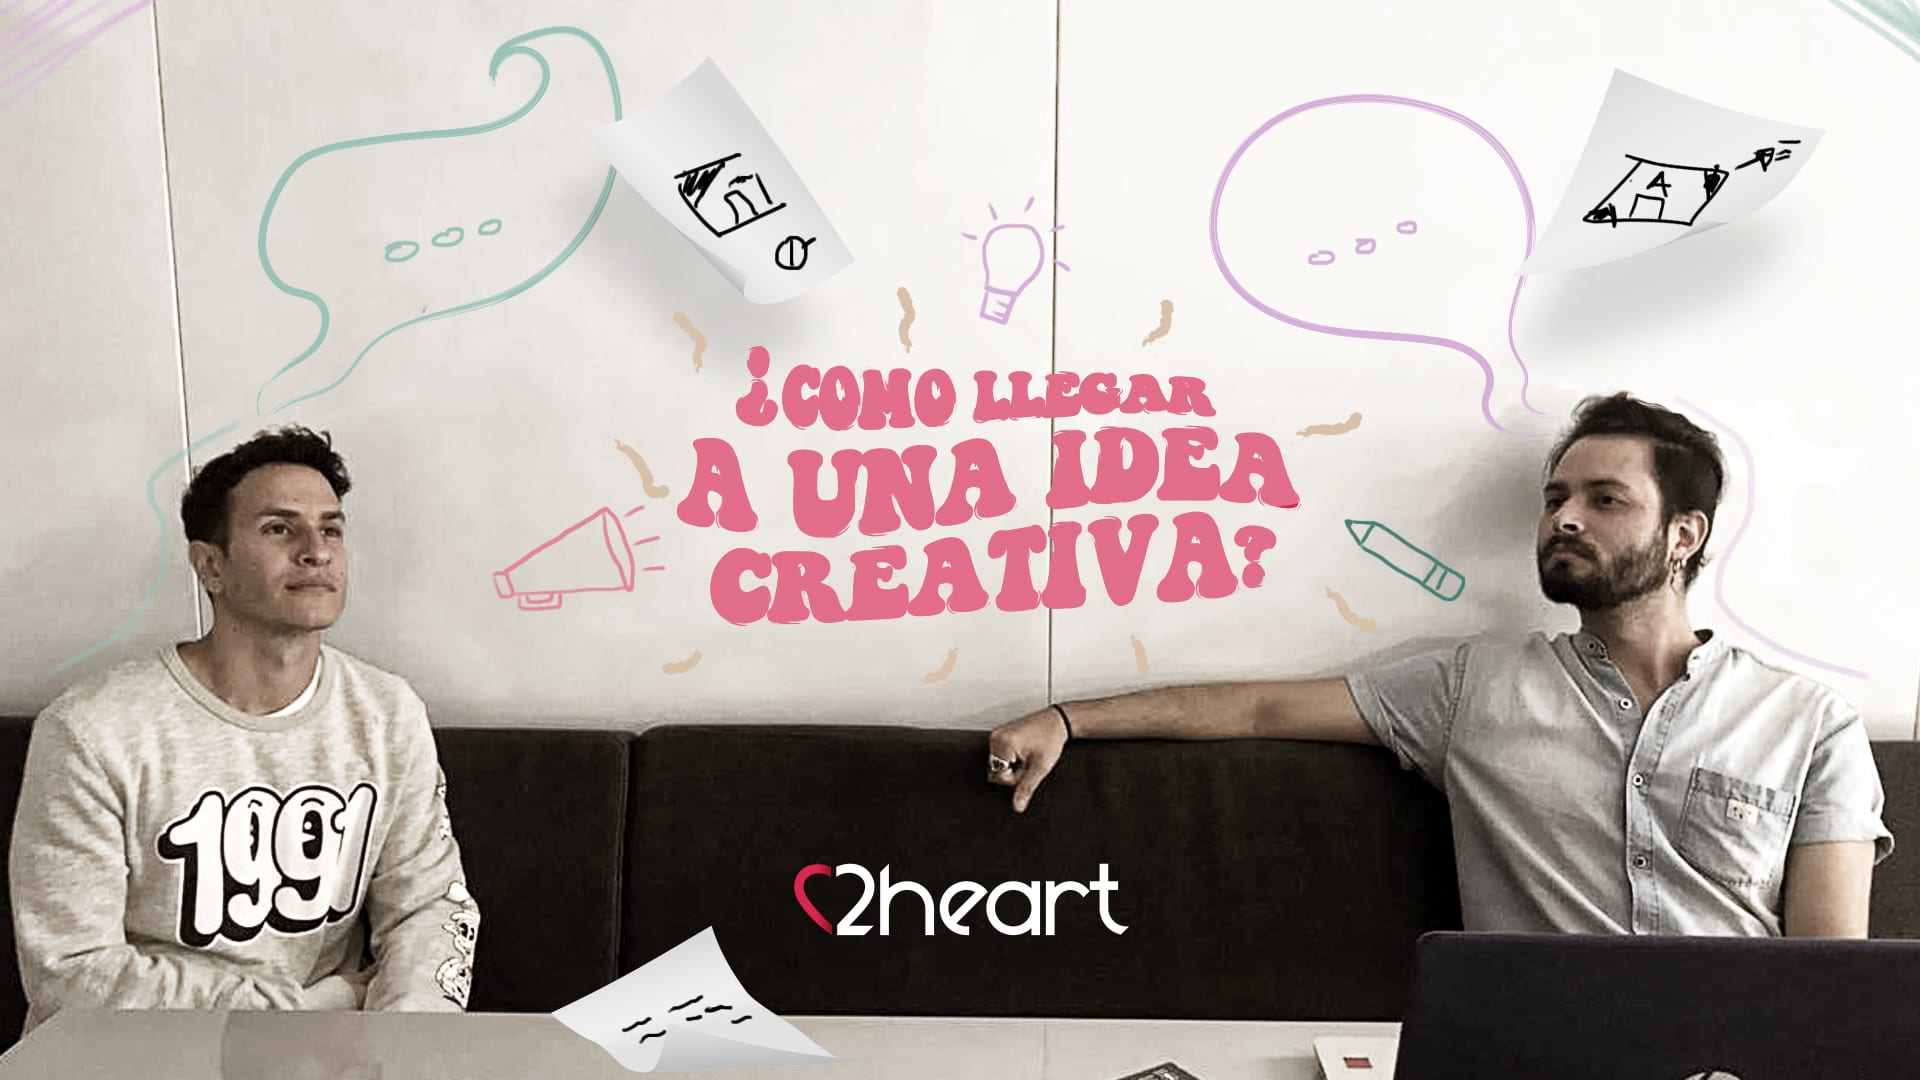 Idea Creativa 2heart